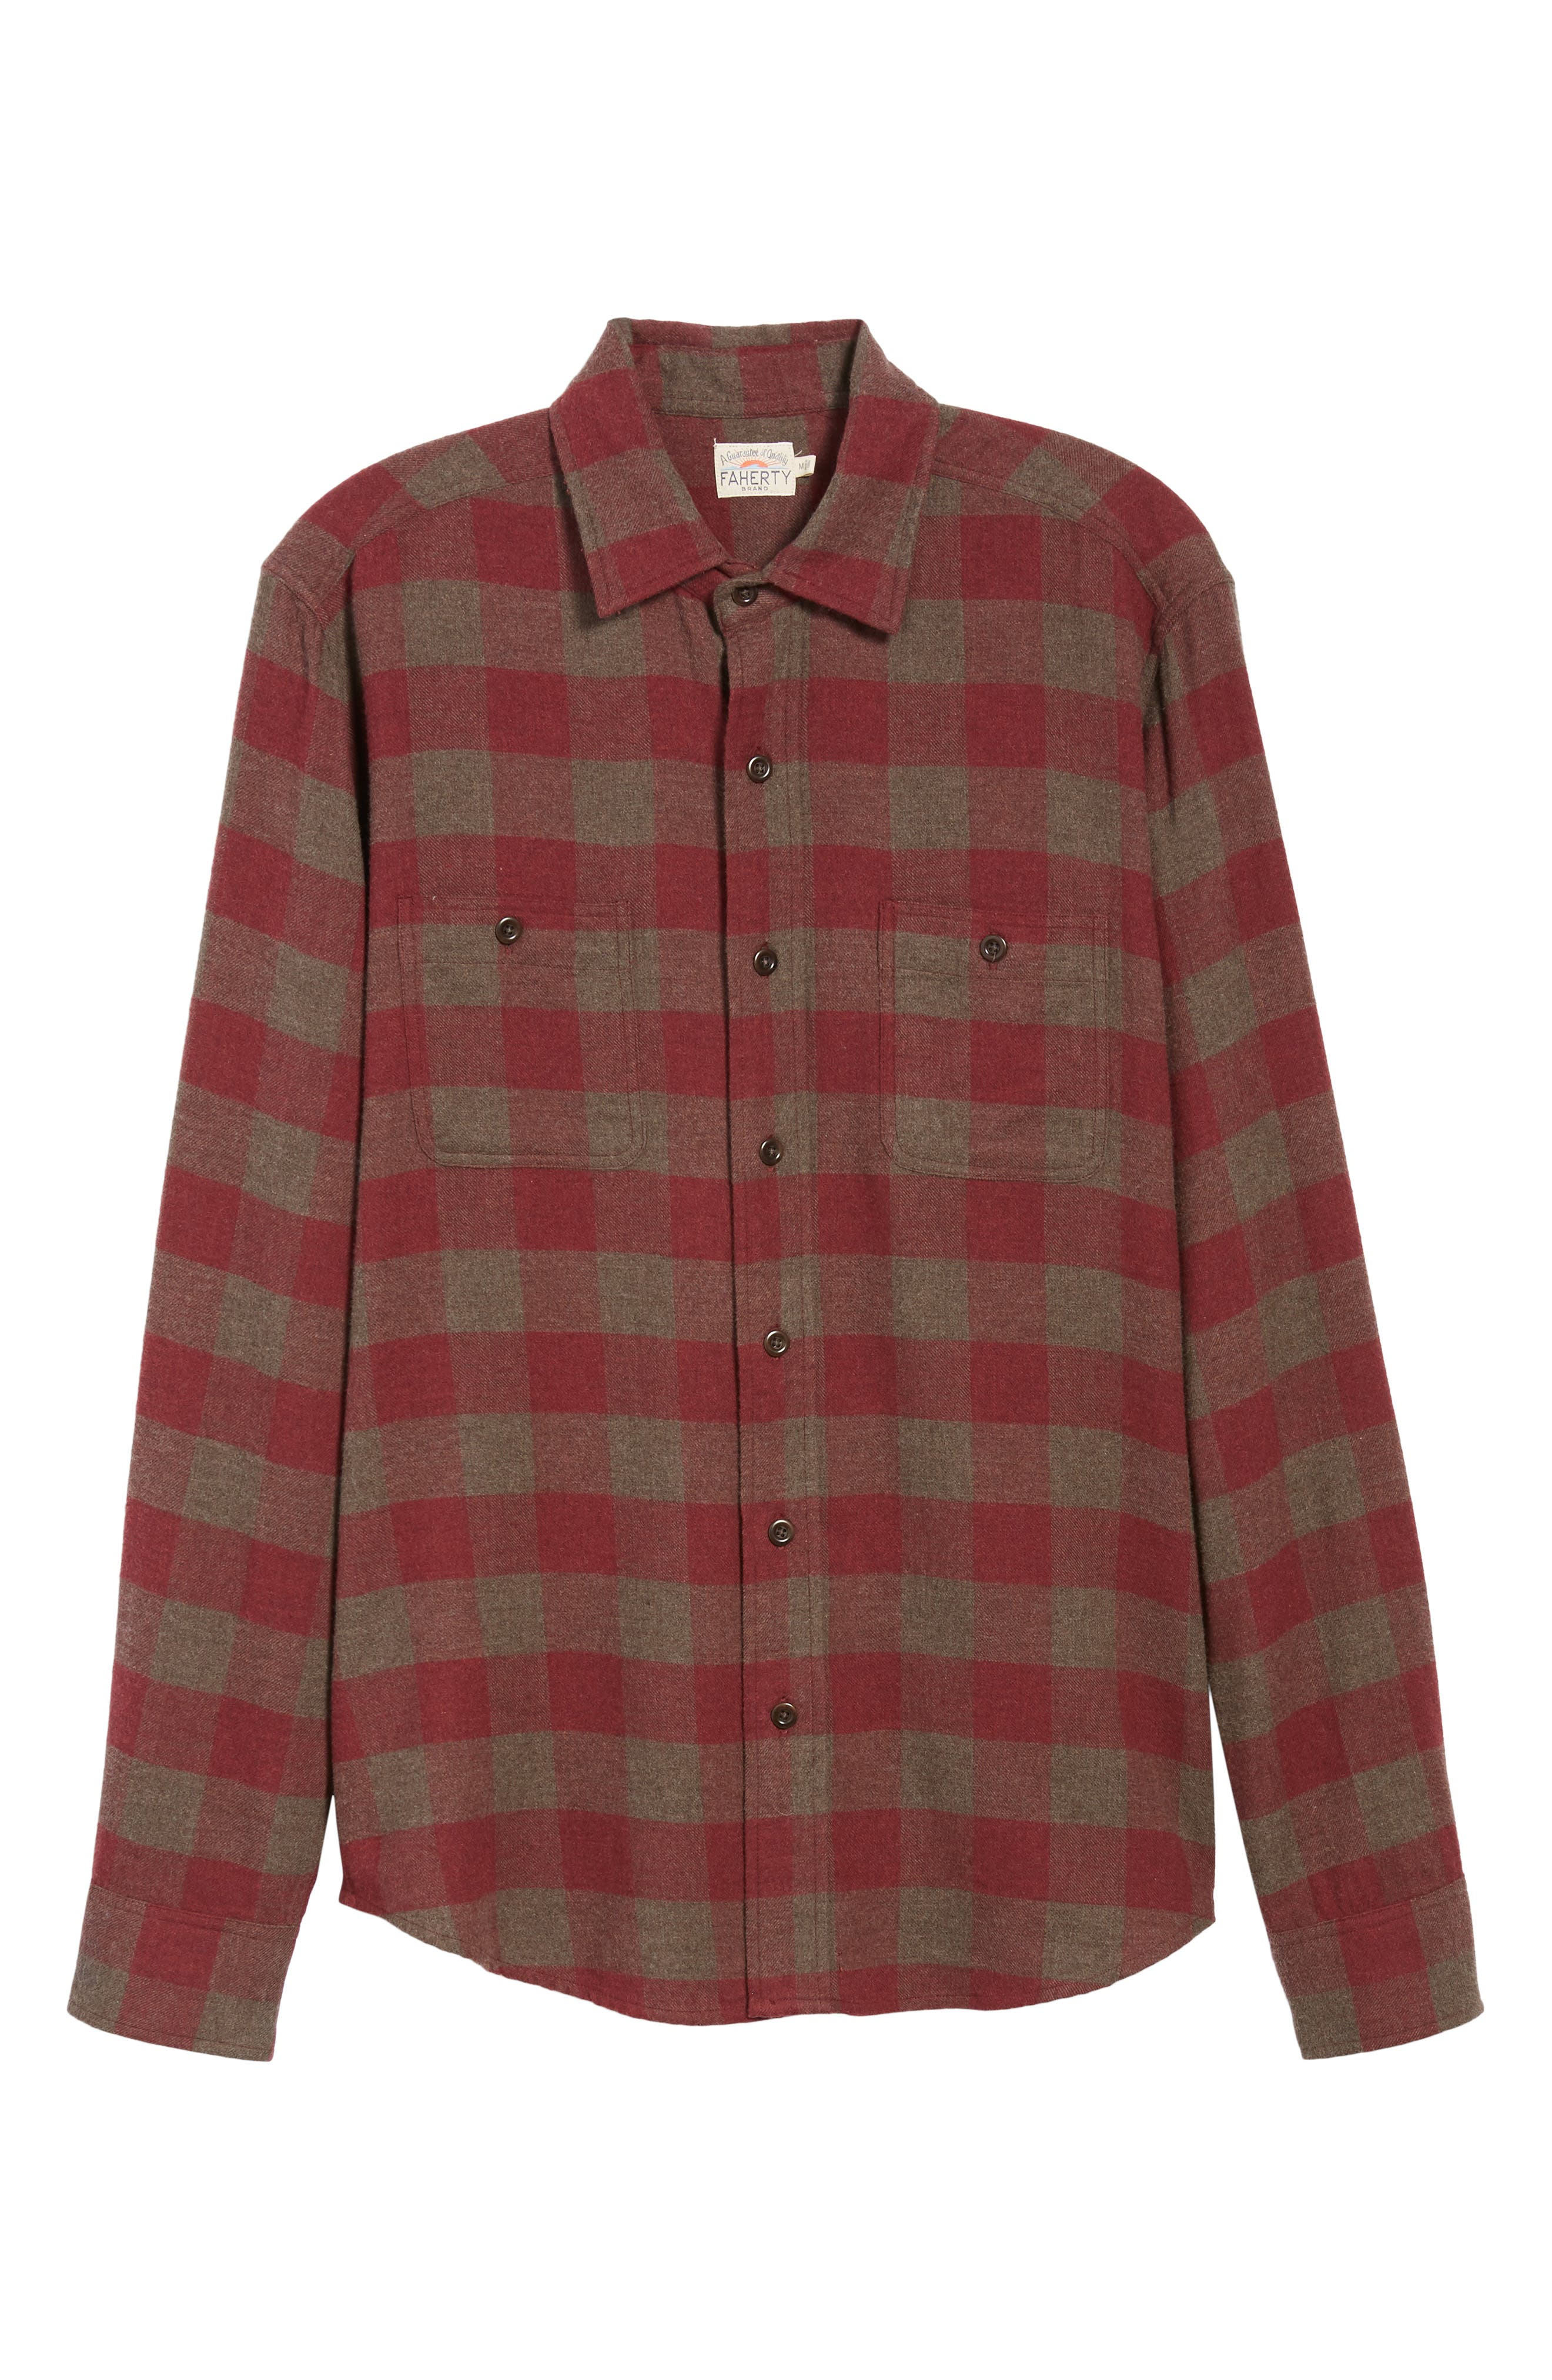 Seasons Regular Fit Check Flannel Shirt,                             Alternate thumbnail 5, color,                             WINE CHESTNUT BUFFALO